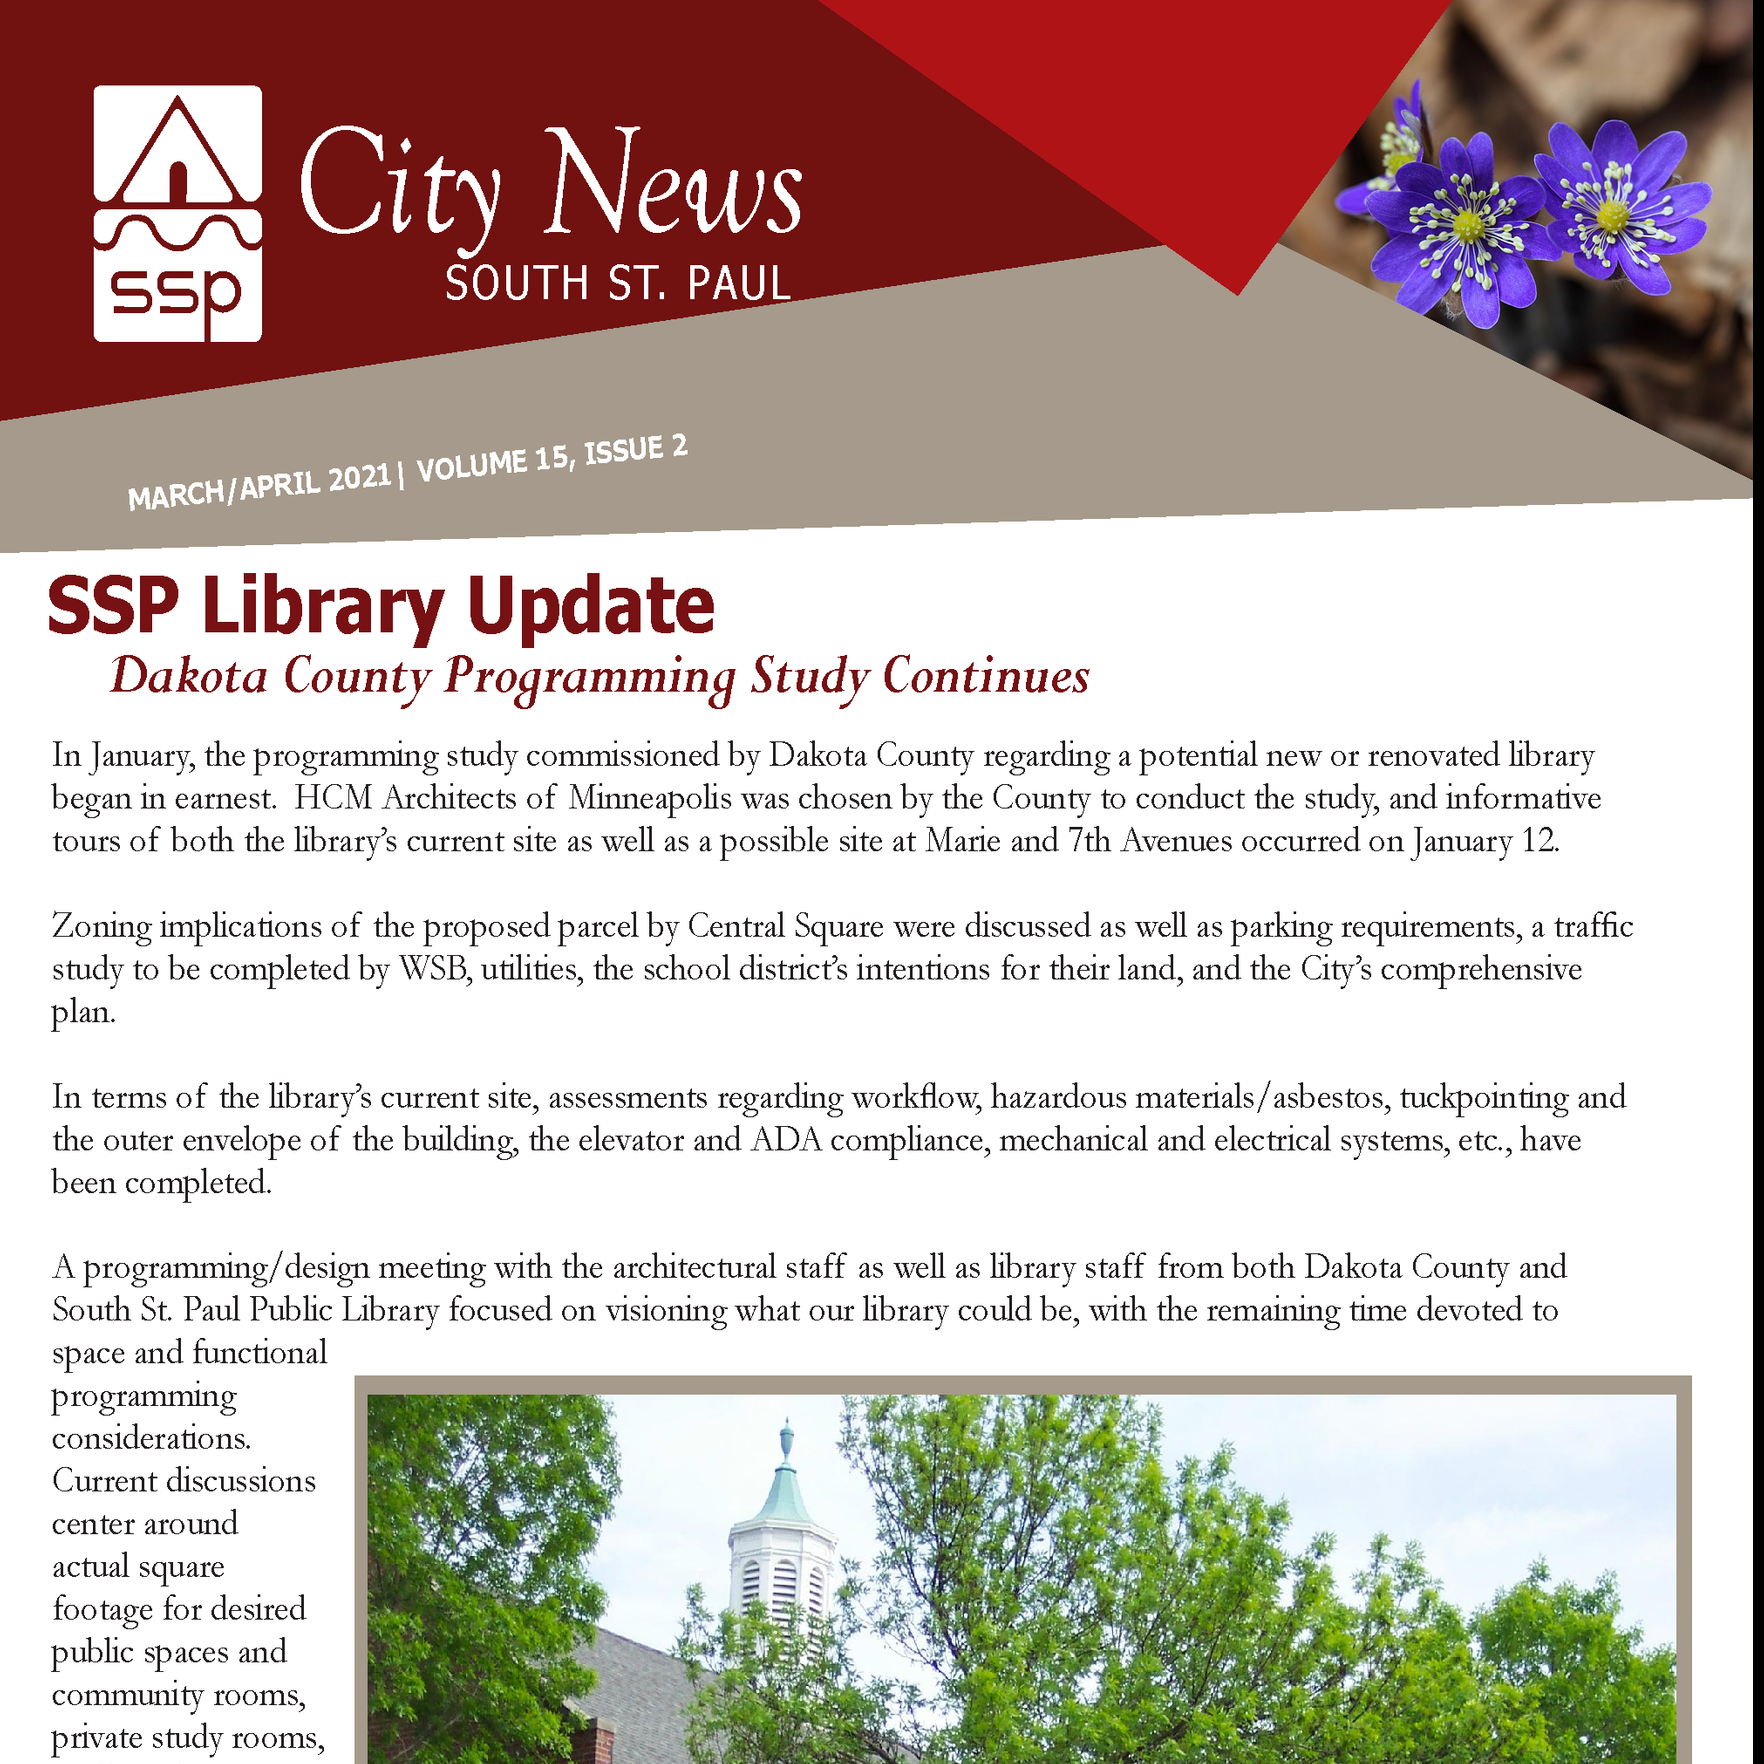 Image of the front cover of the SSP City News for March/April 2021